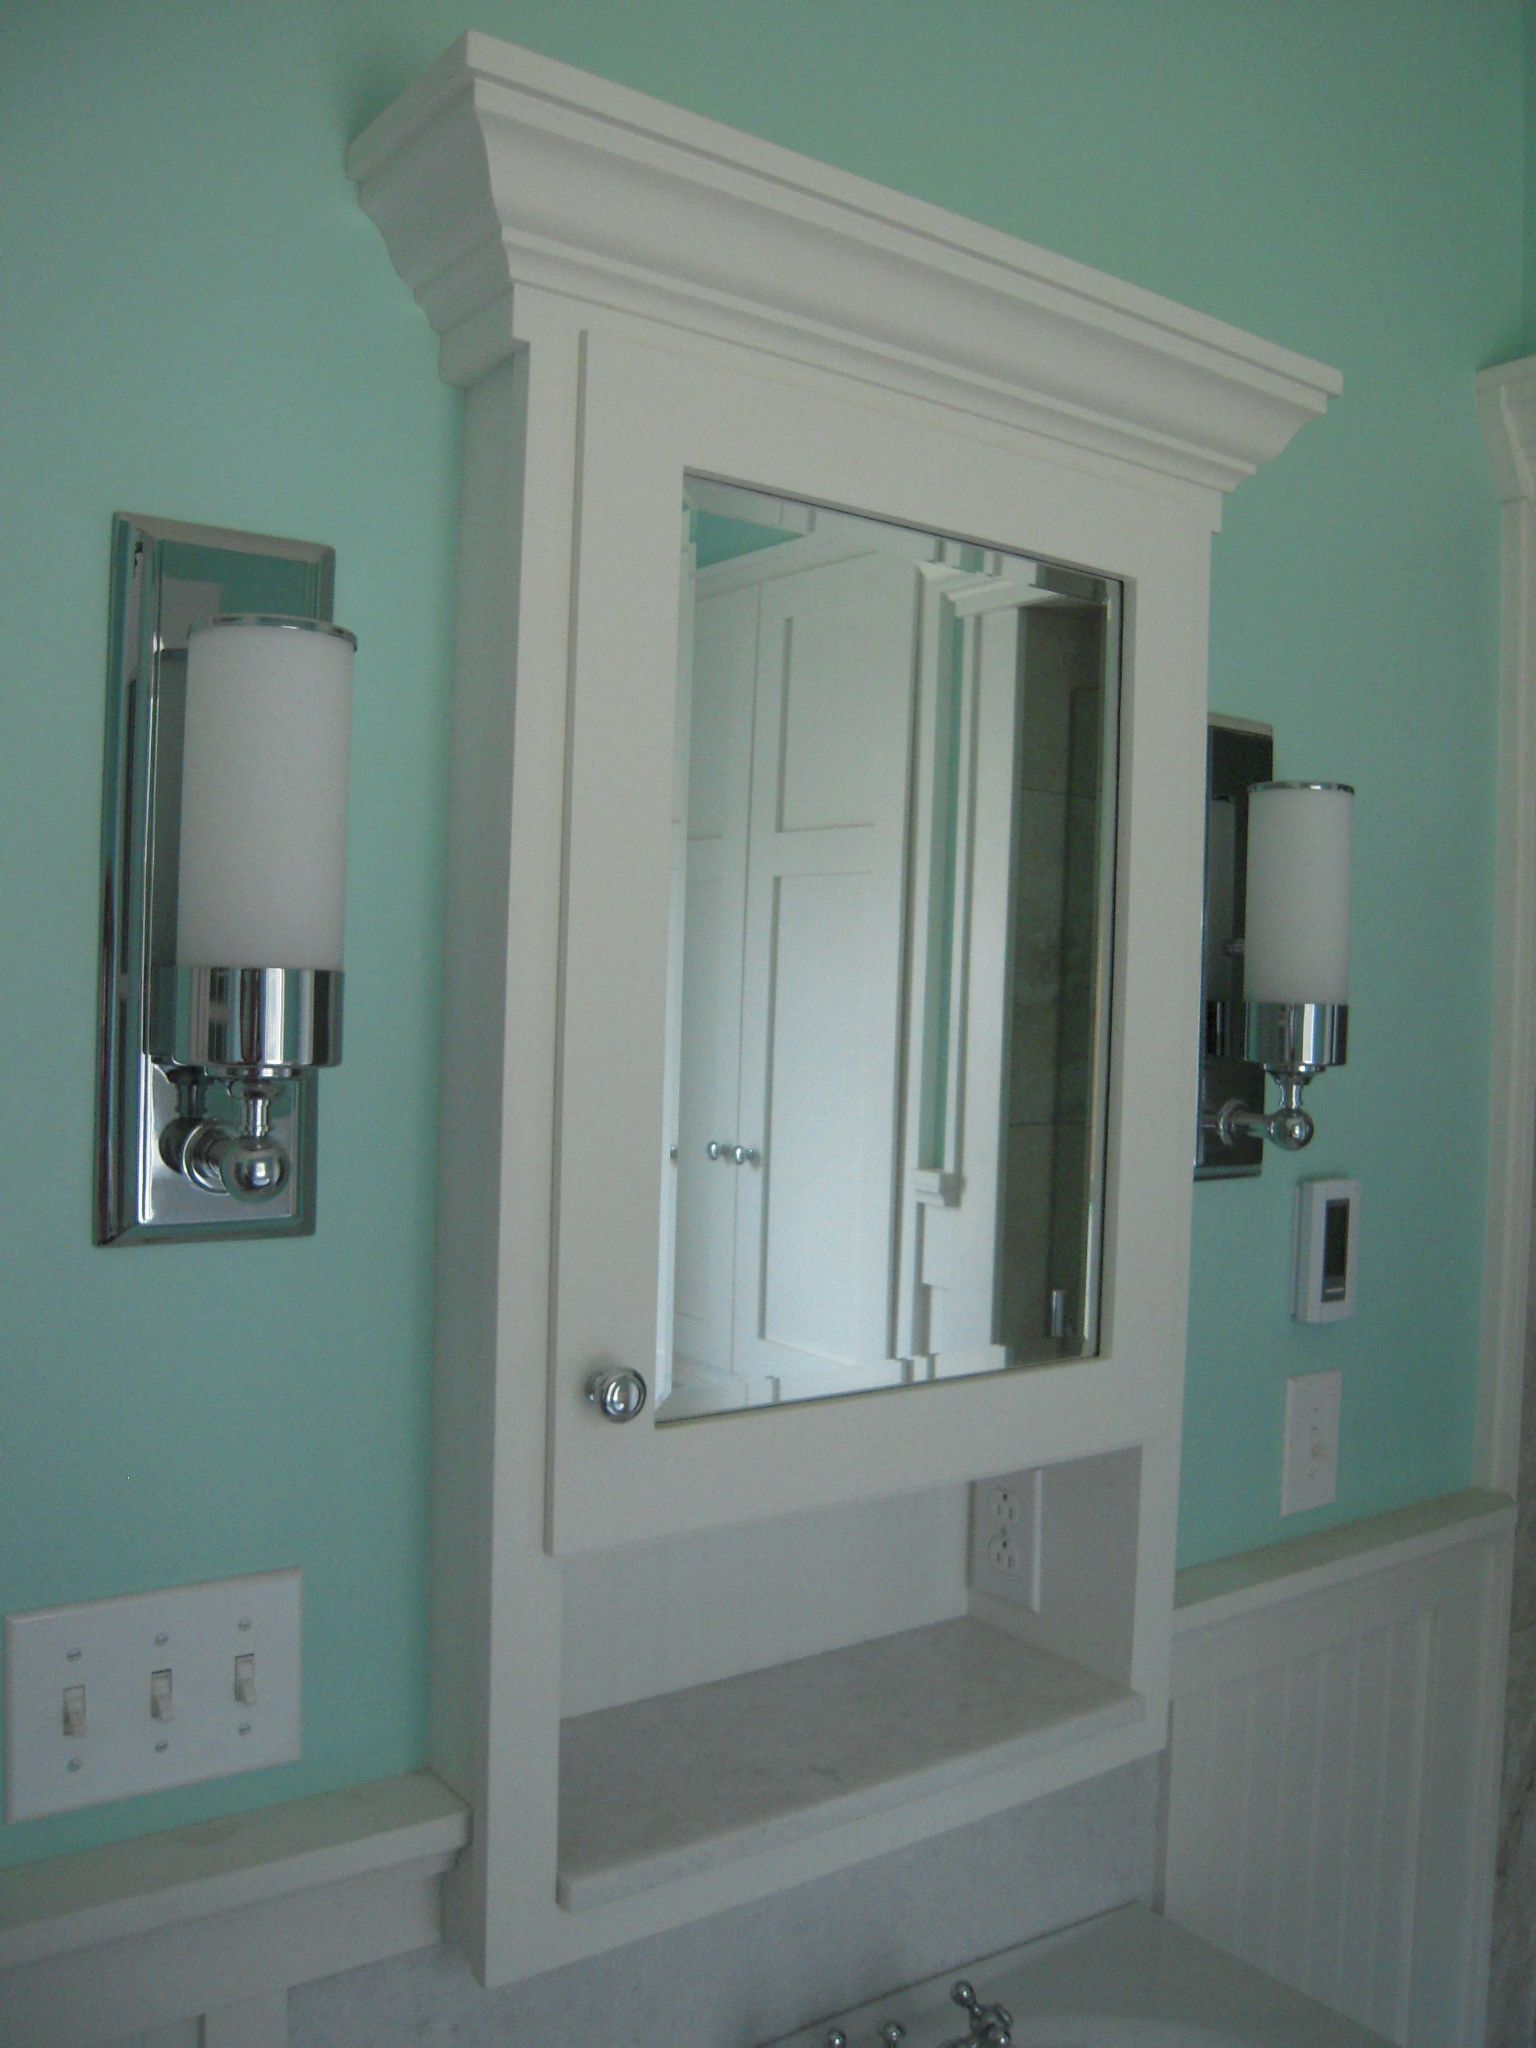 Vintage Bathroom Cabinets For Storage bathroom remodel : medicine cabinets with sliding mirror doors